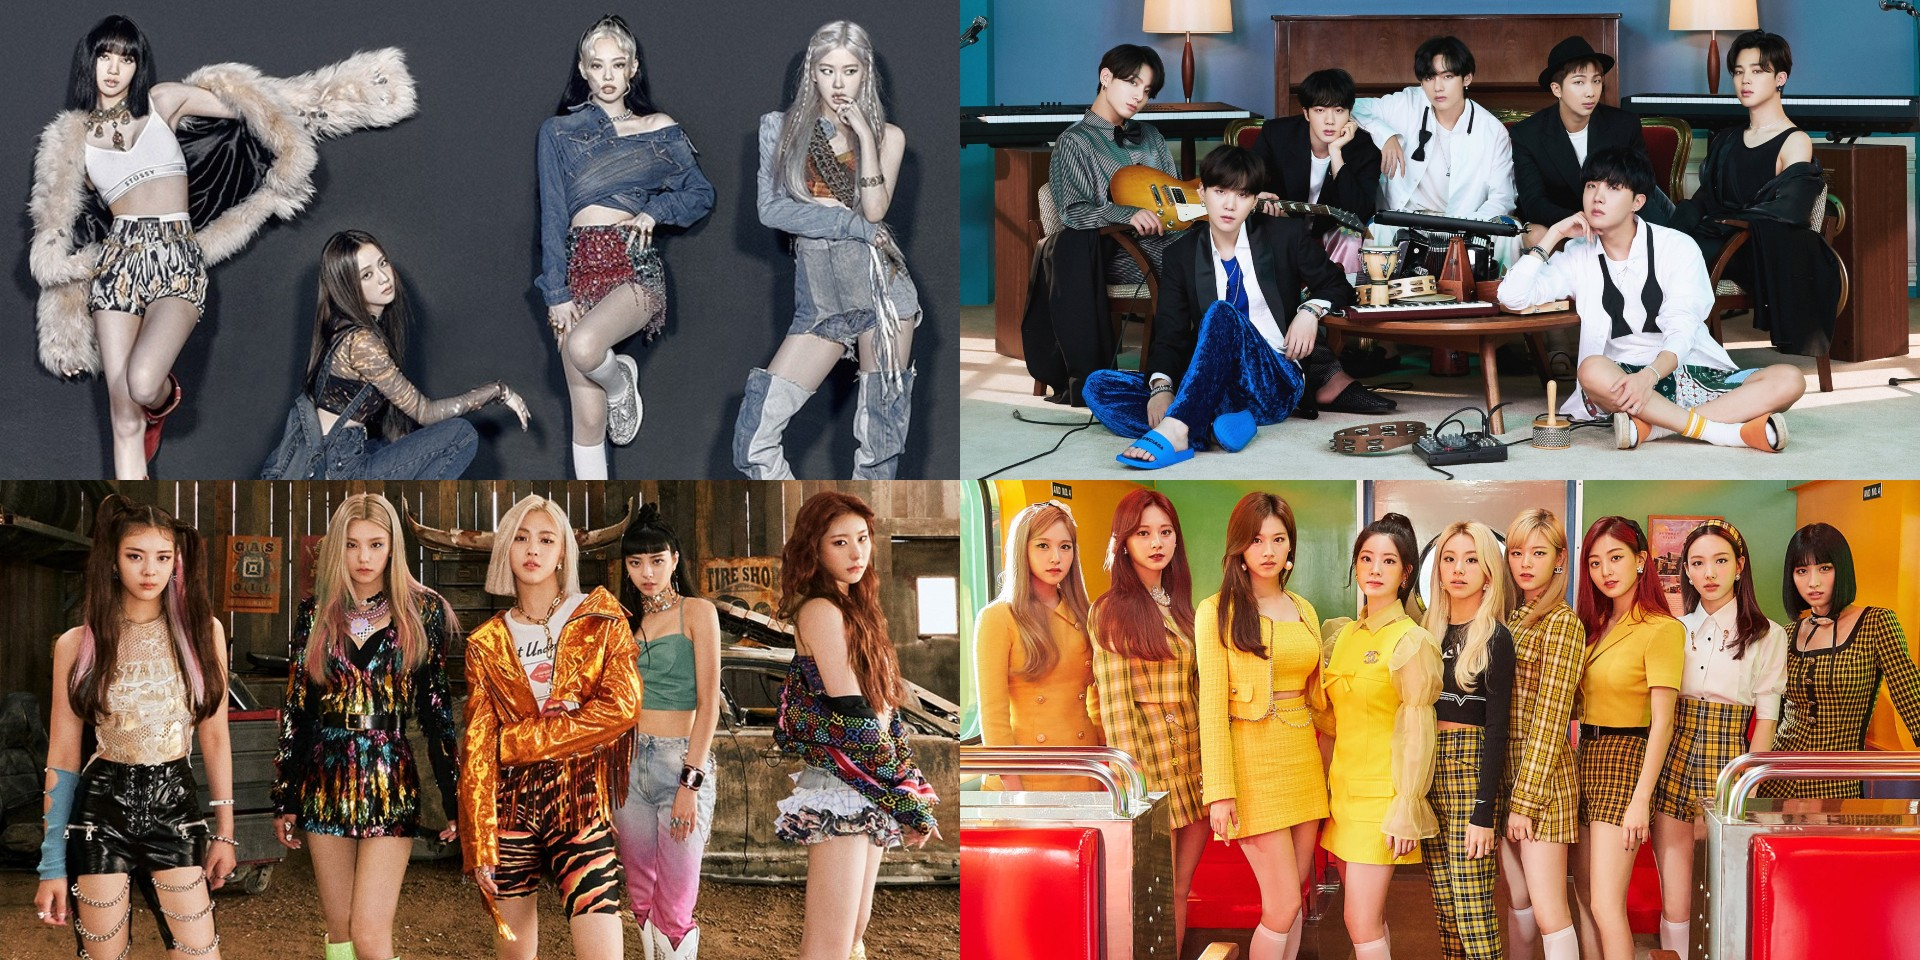 YouTube reveals top videos in Singapore, K-pop dominates music list with BLACKPINK, BTS, ITZY, and TWICE